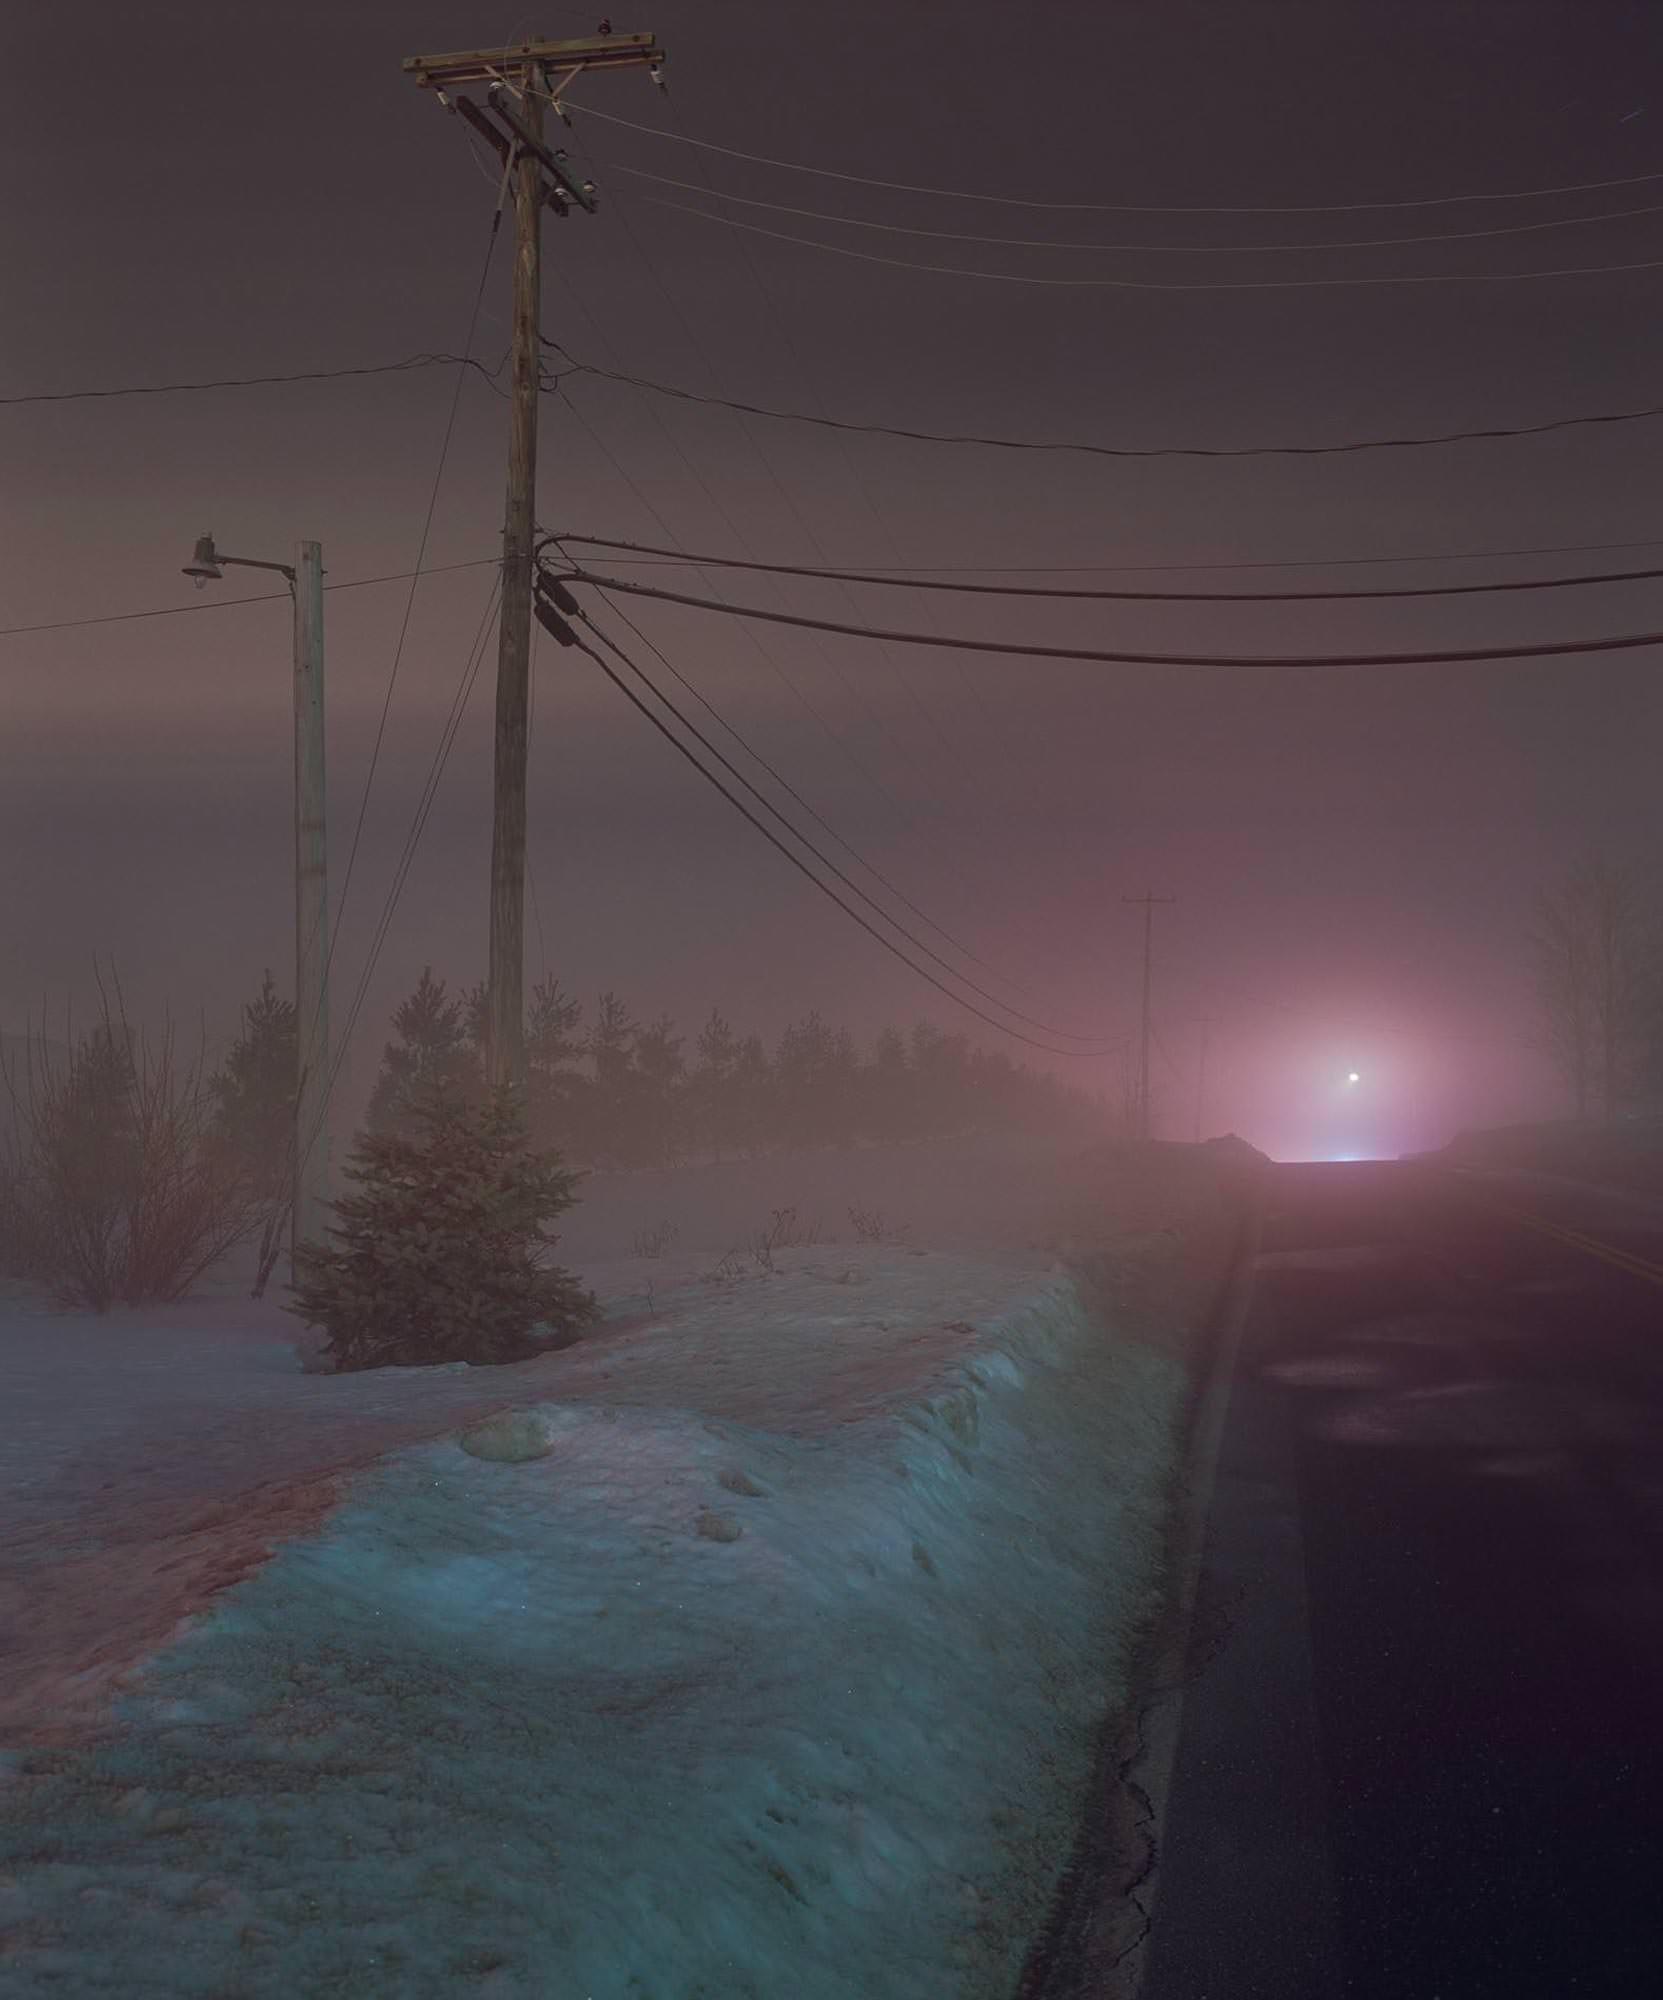 Todd Hido Photographie #2424-A, 1996